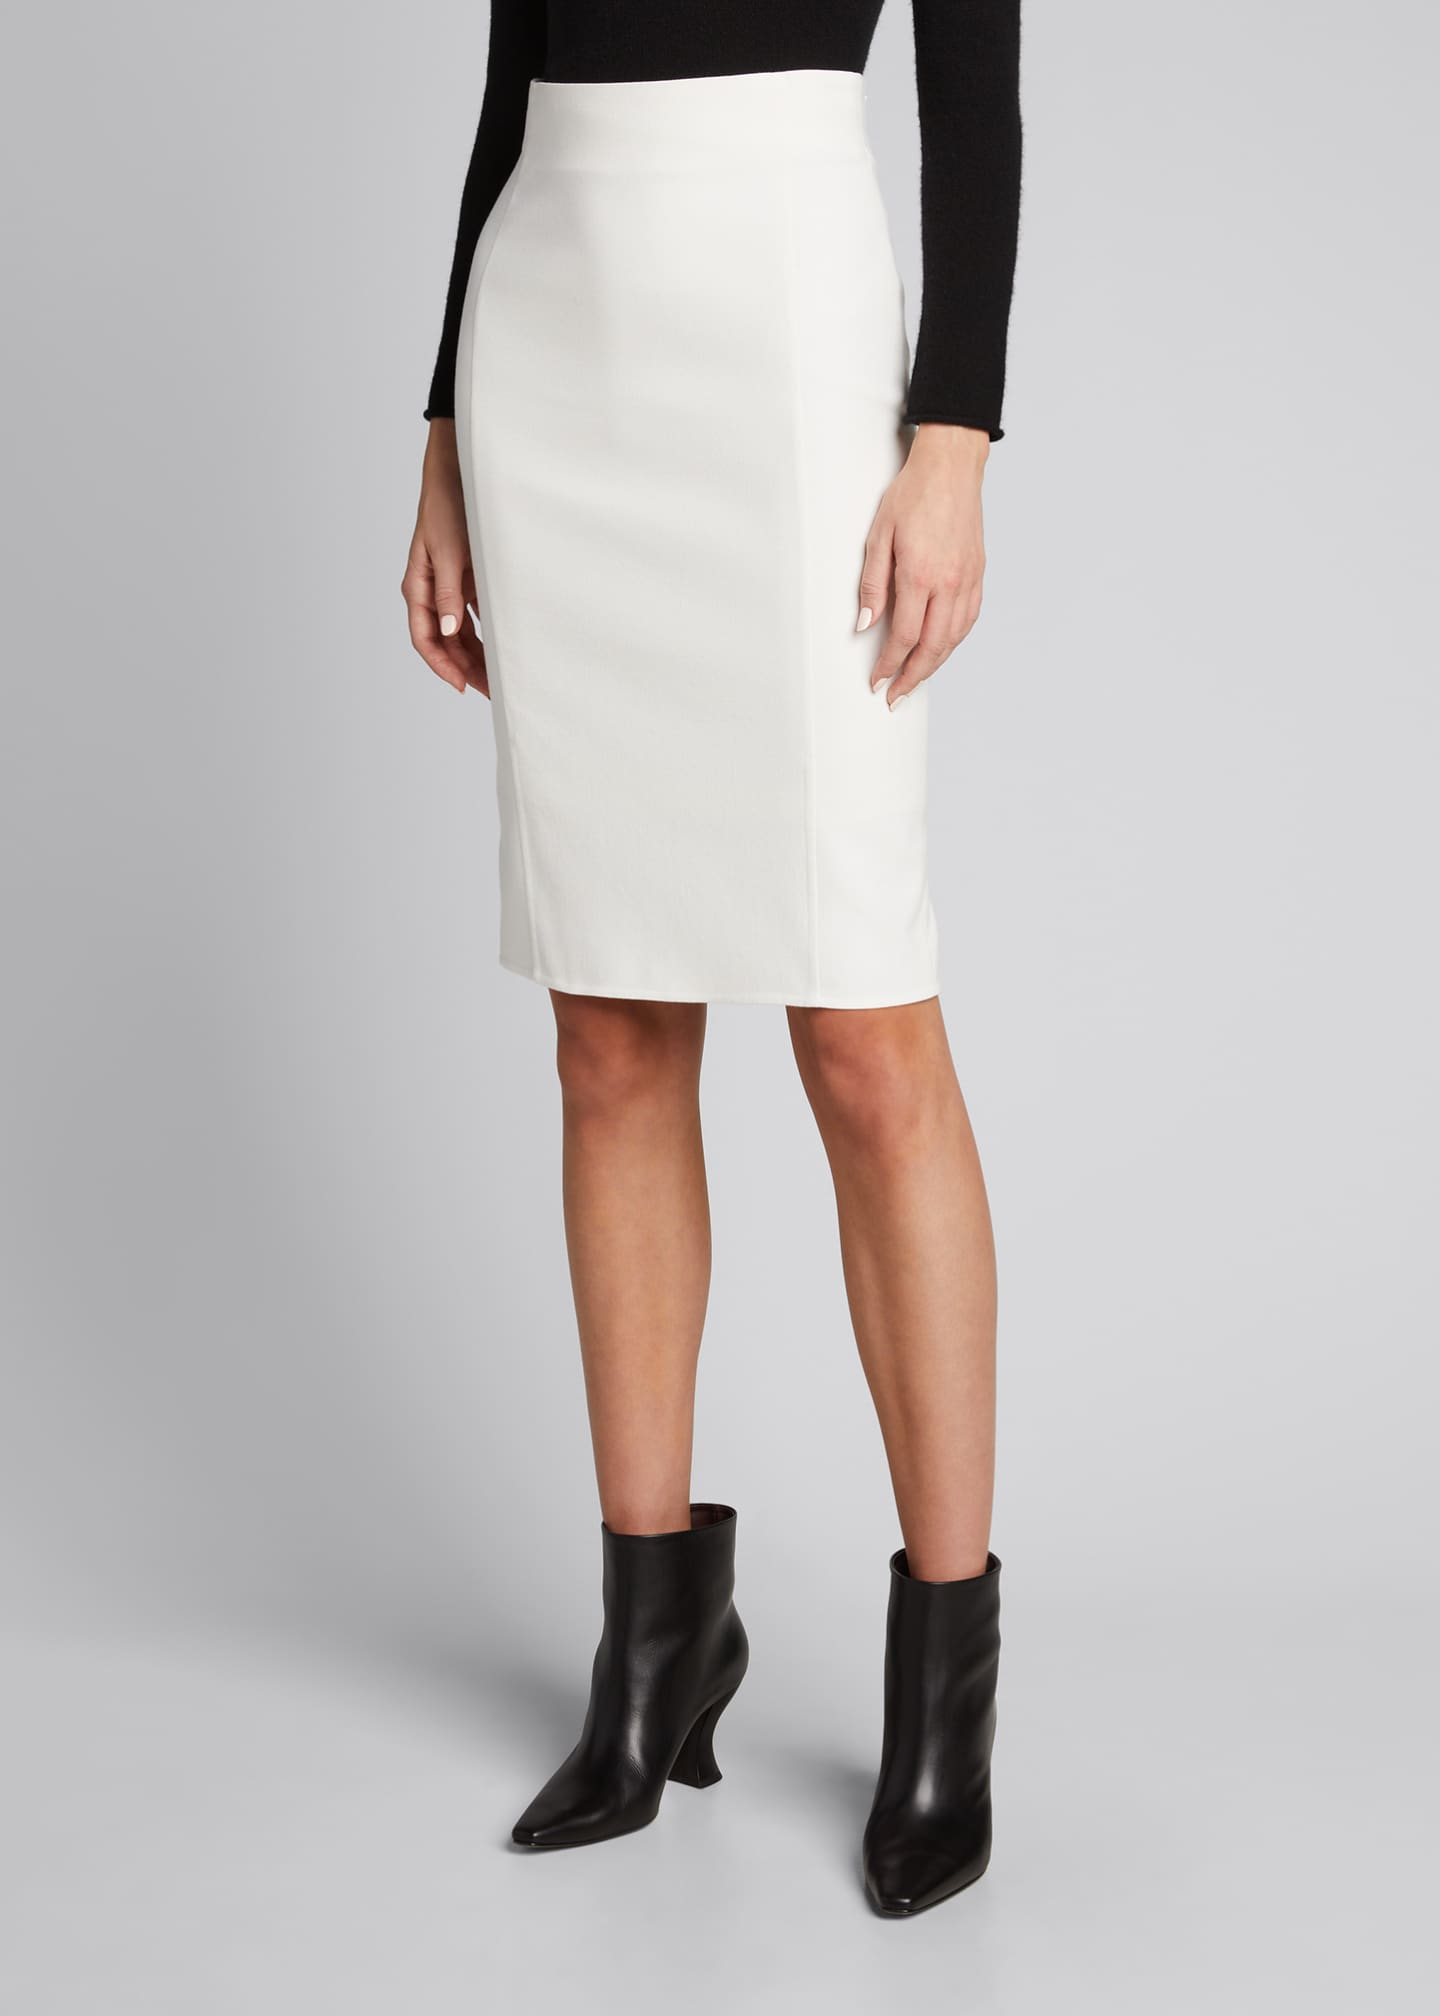 Image 3 of 5: Double-Face Pencil Skirt